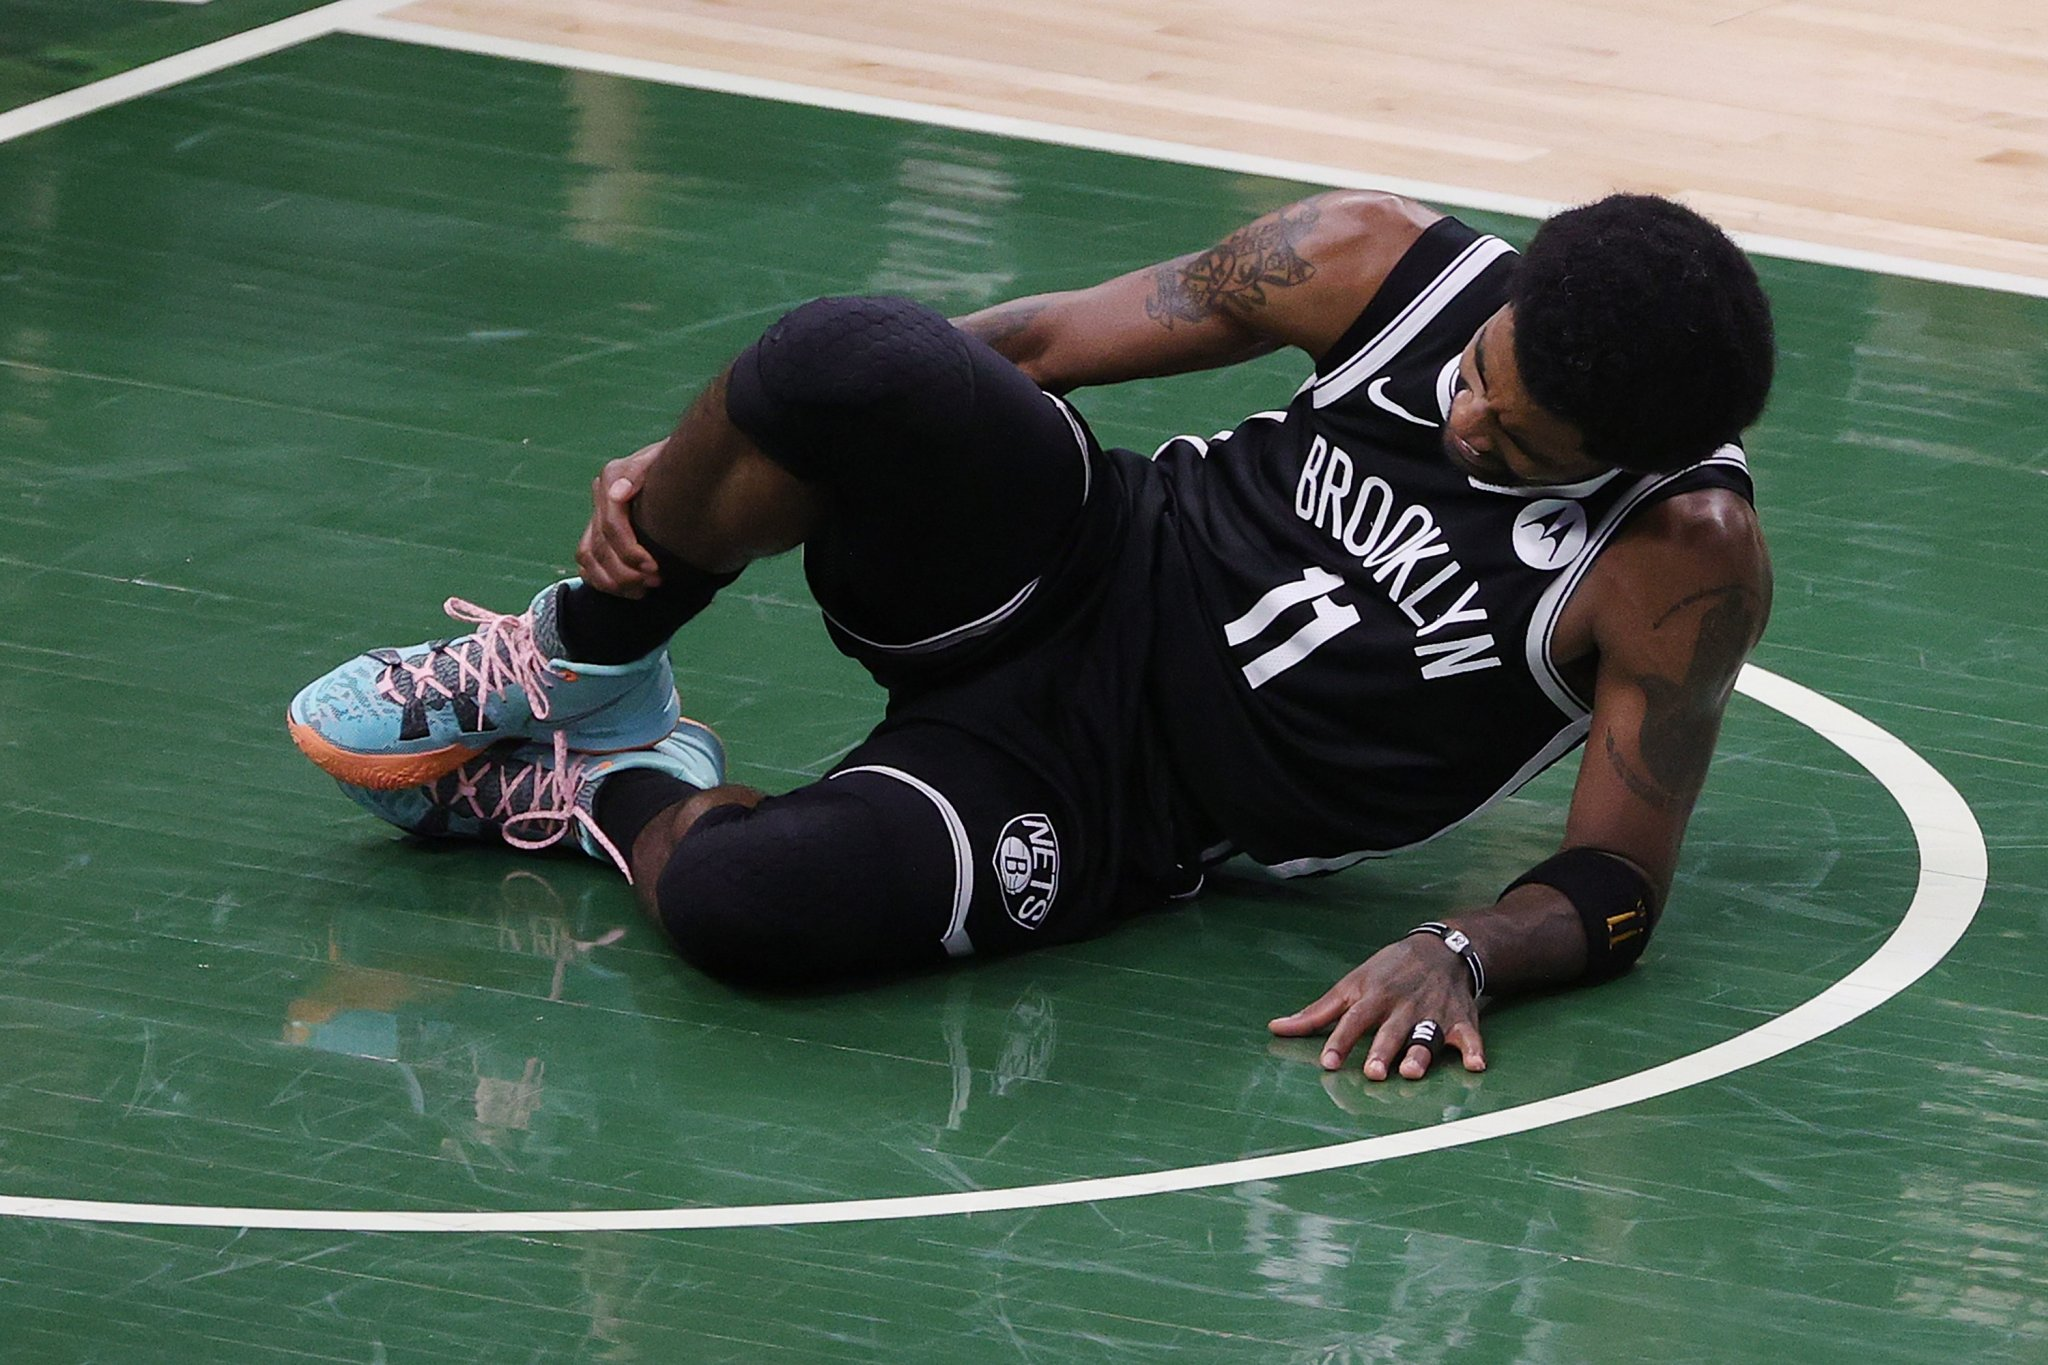 Kyrie's ankle injury has players claiming 'karma' and calling Giannis dirty - cover